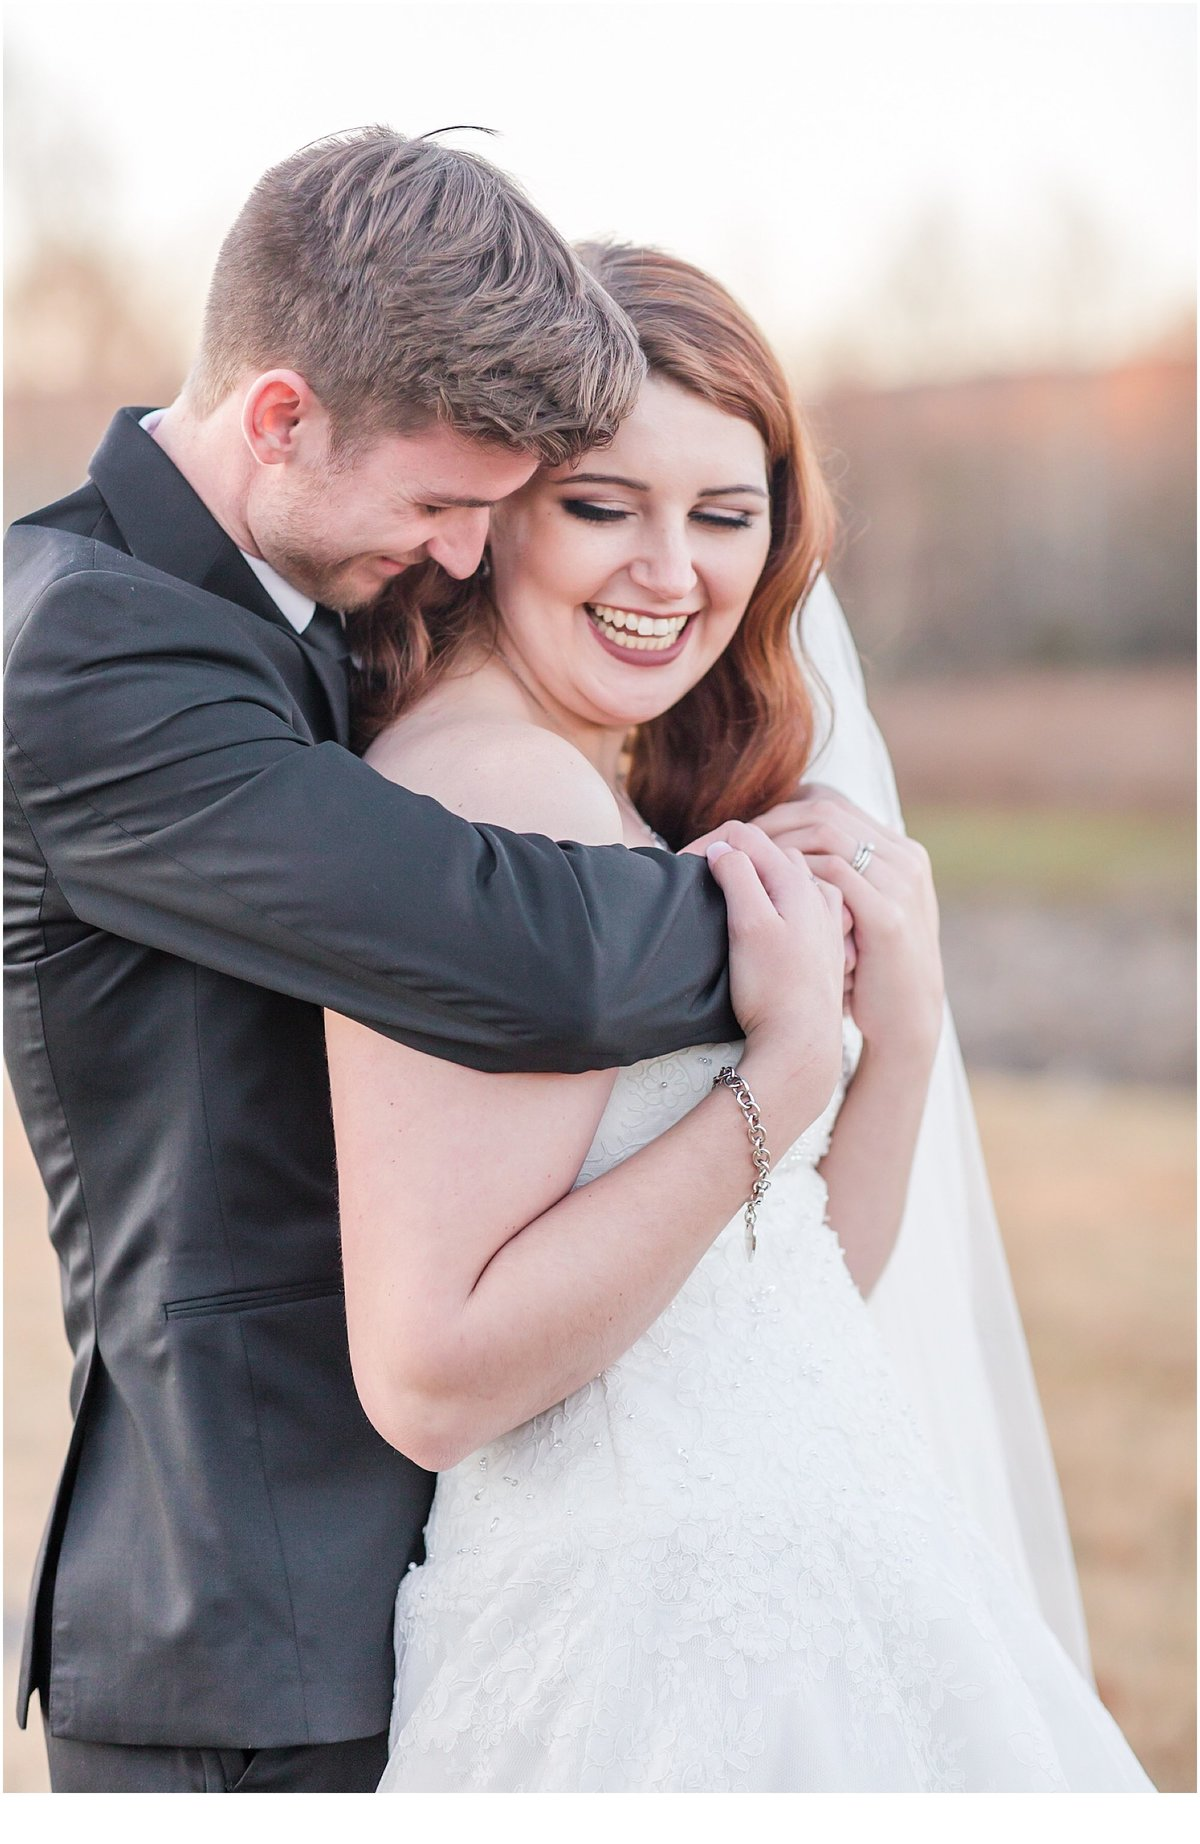 Bride and Groom enjoying romantic embrace during their Heritage Acres Farm Wedding Clarksville AR